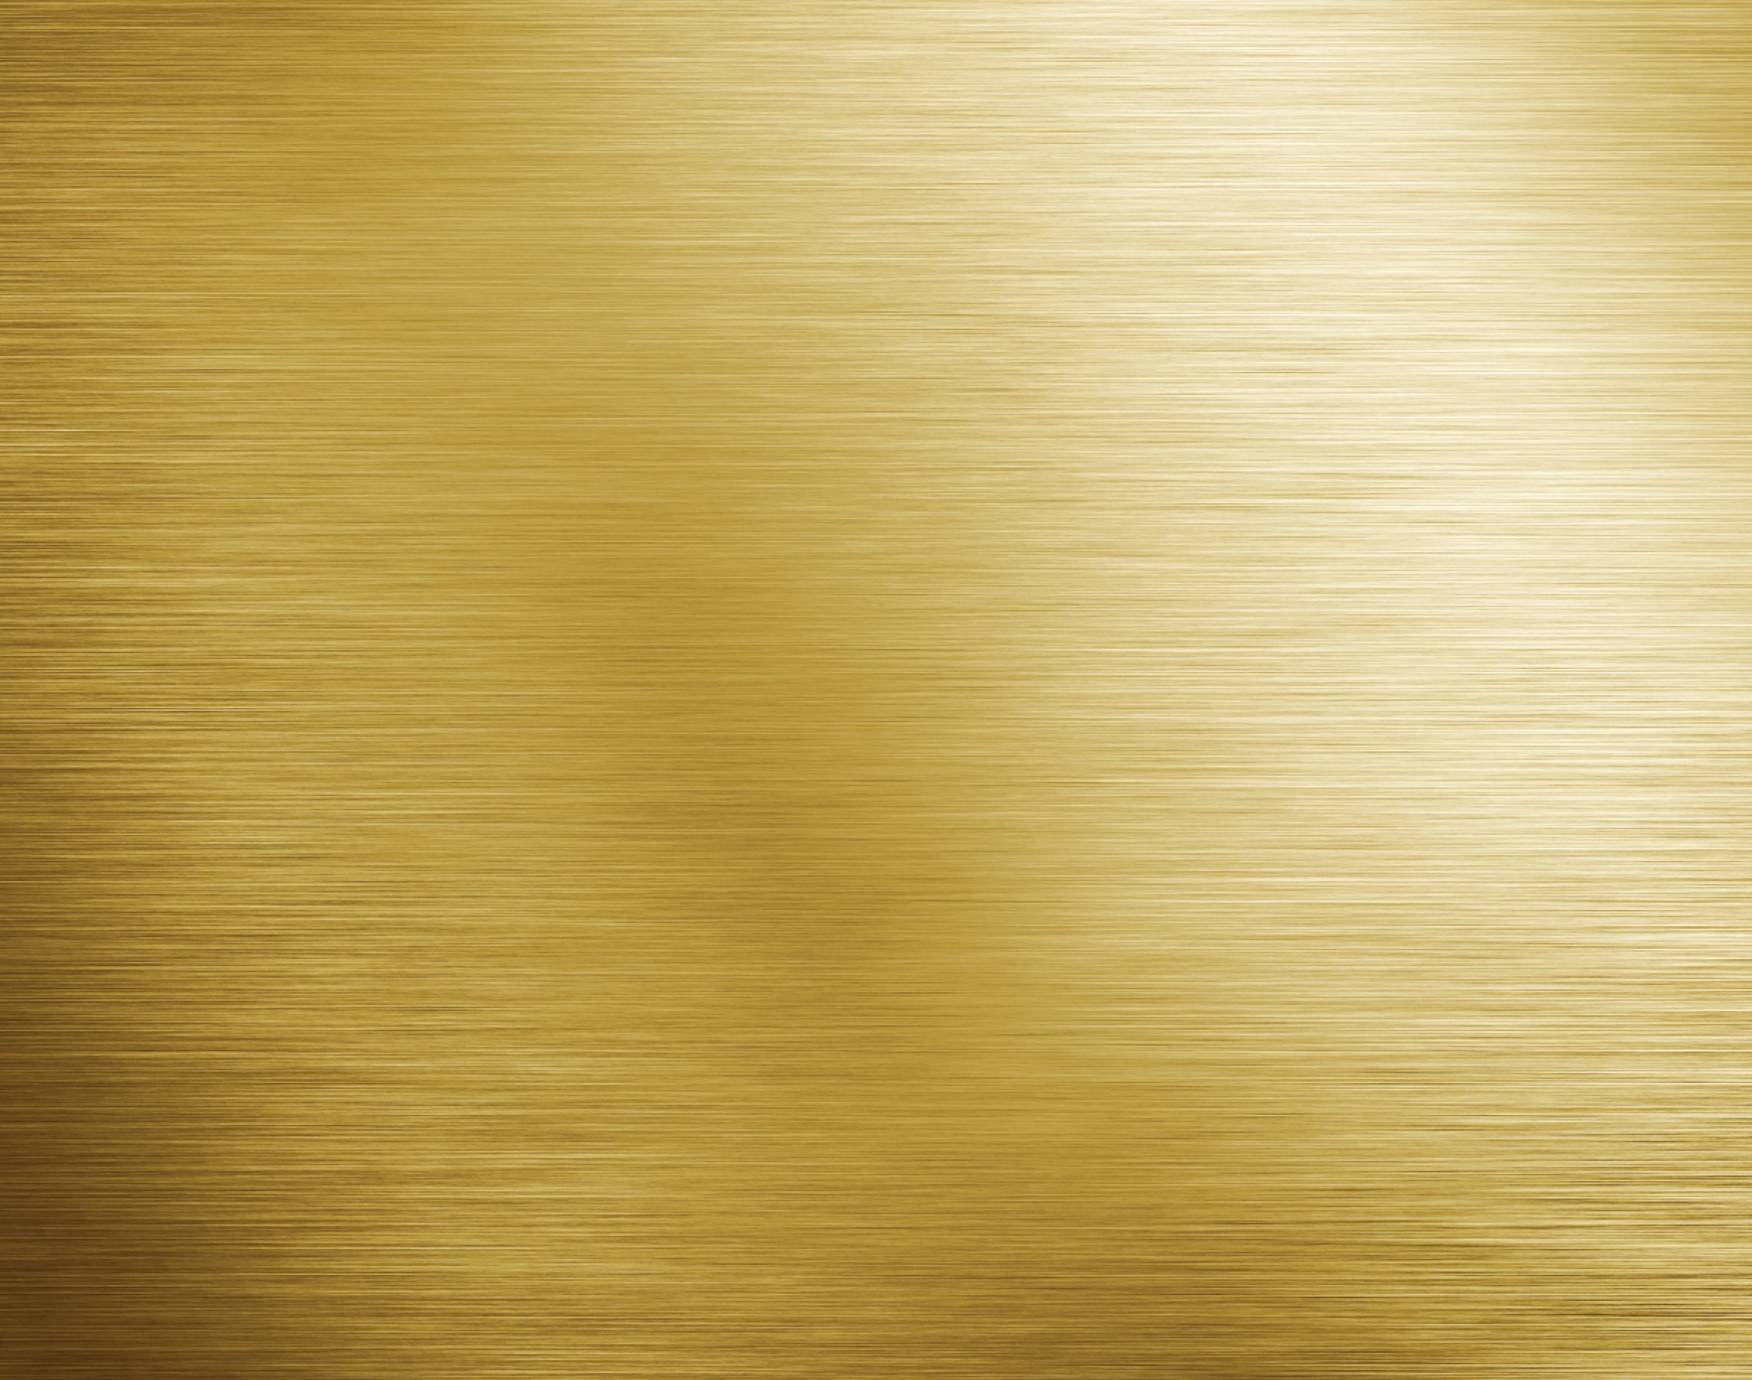 Shiny Gold Wallpaper